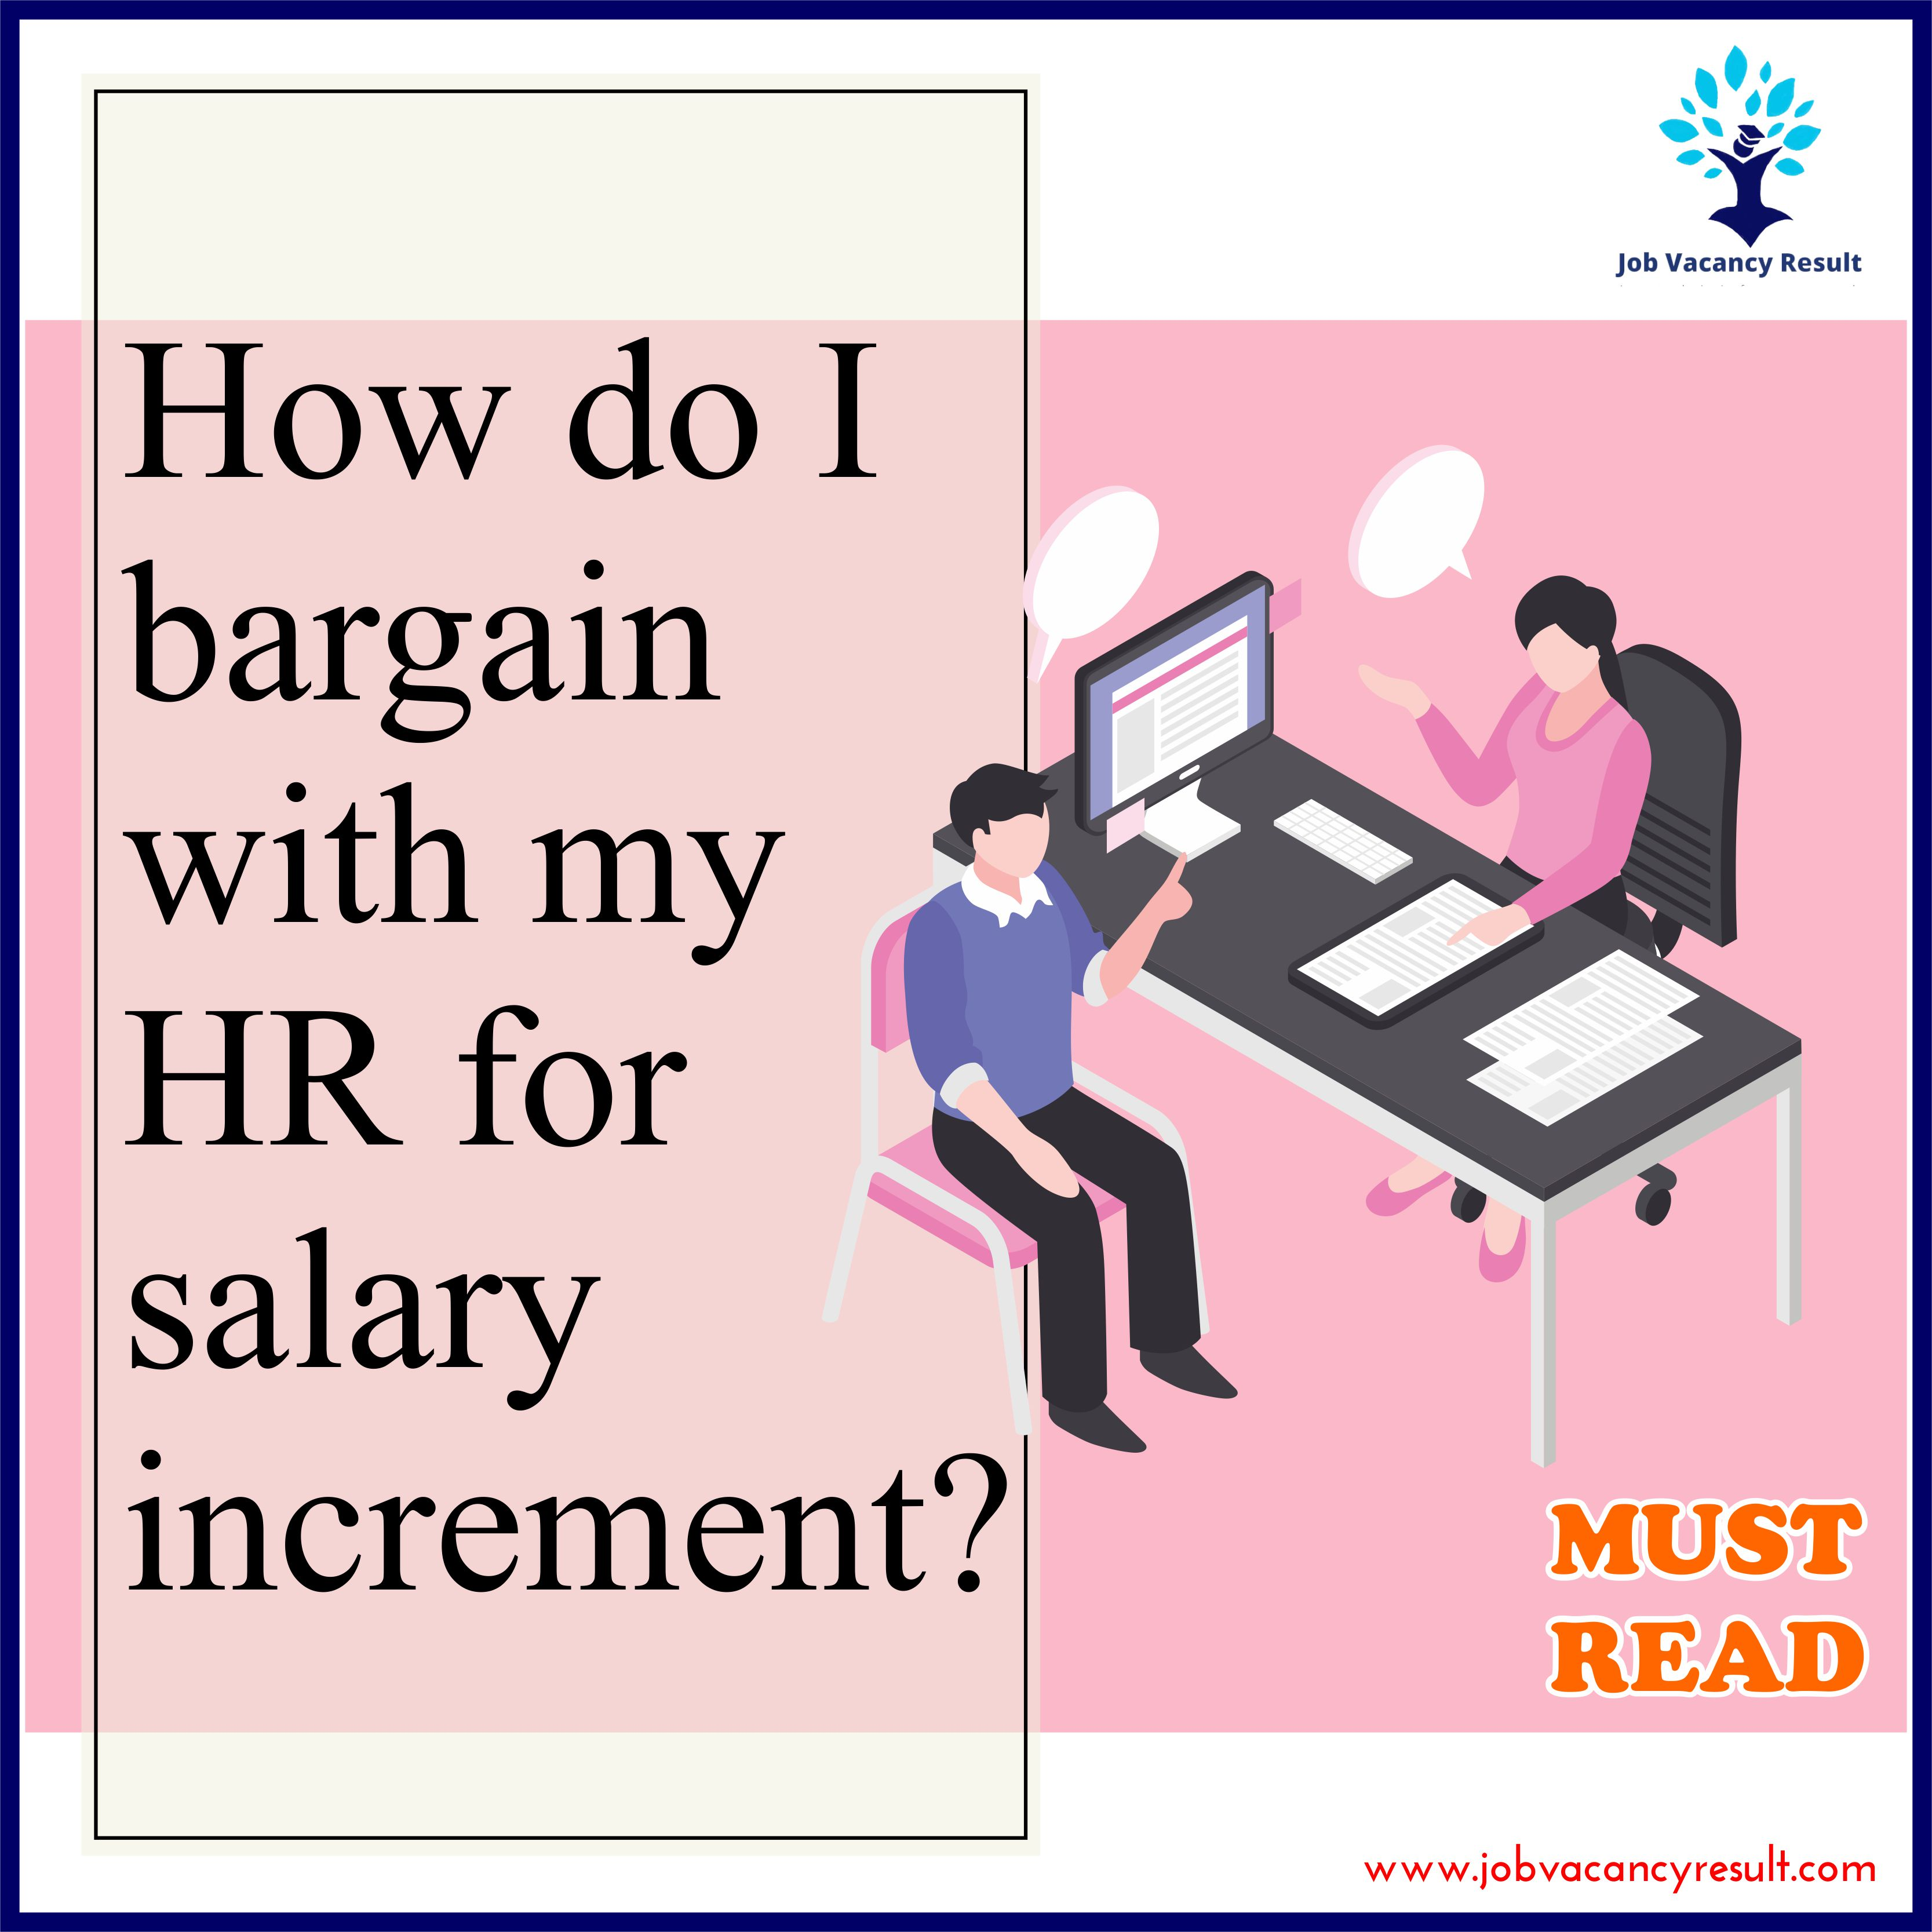 How do I bargain with my HR for salary increment?